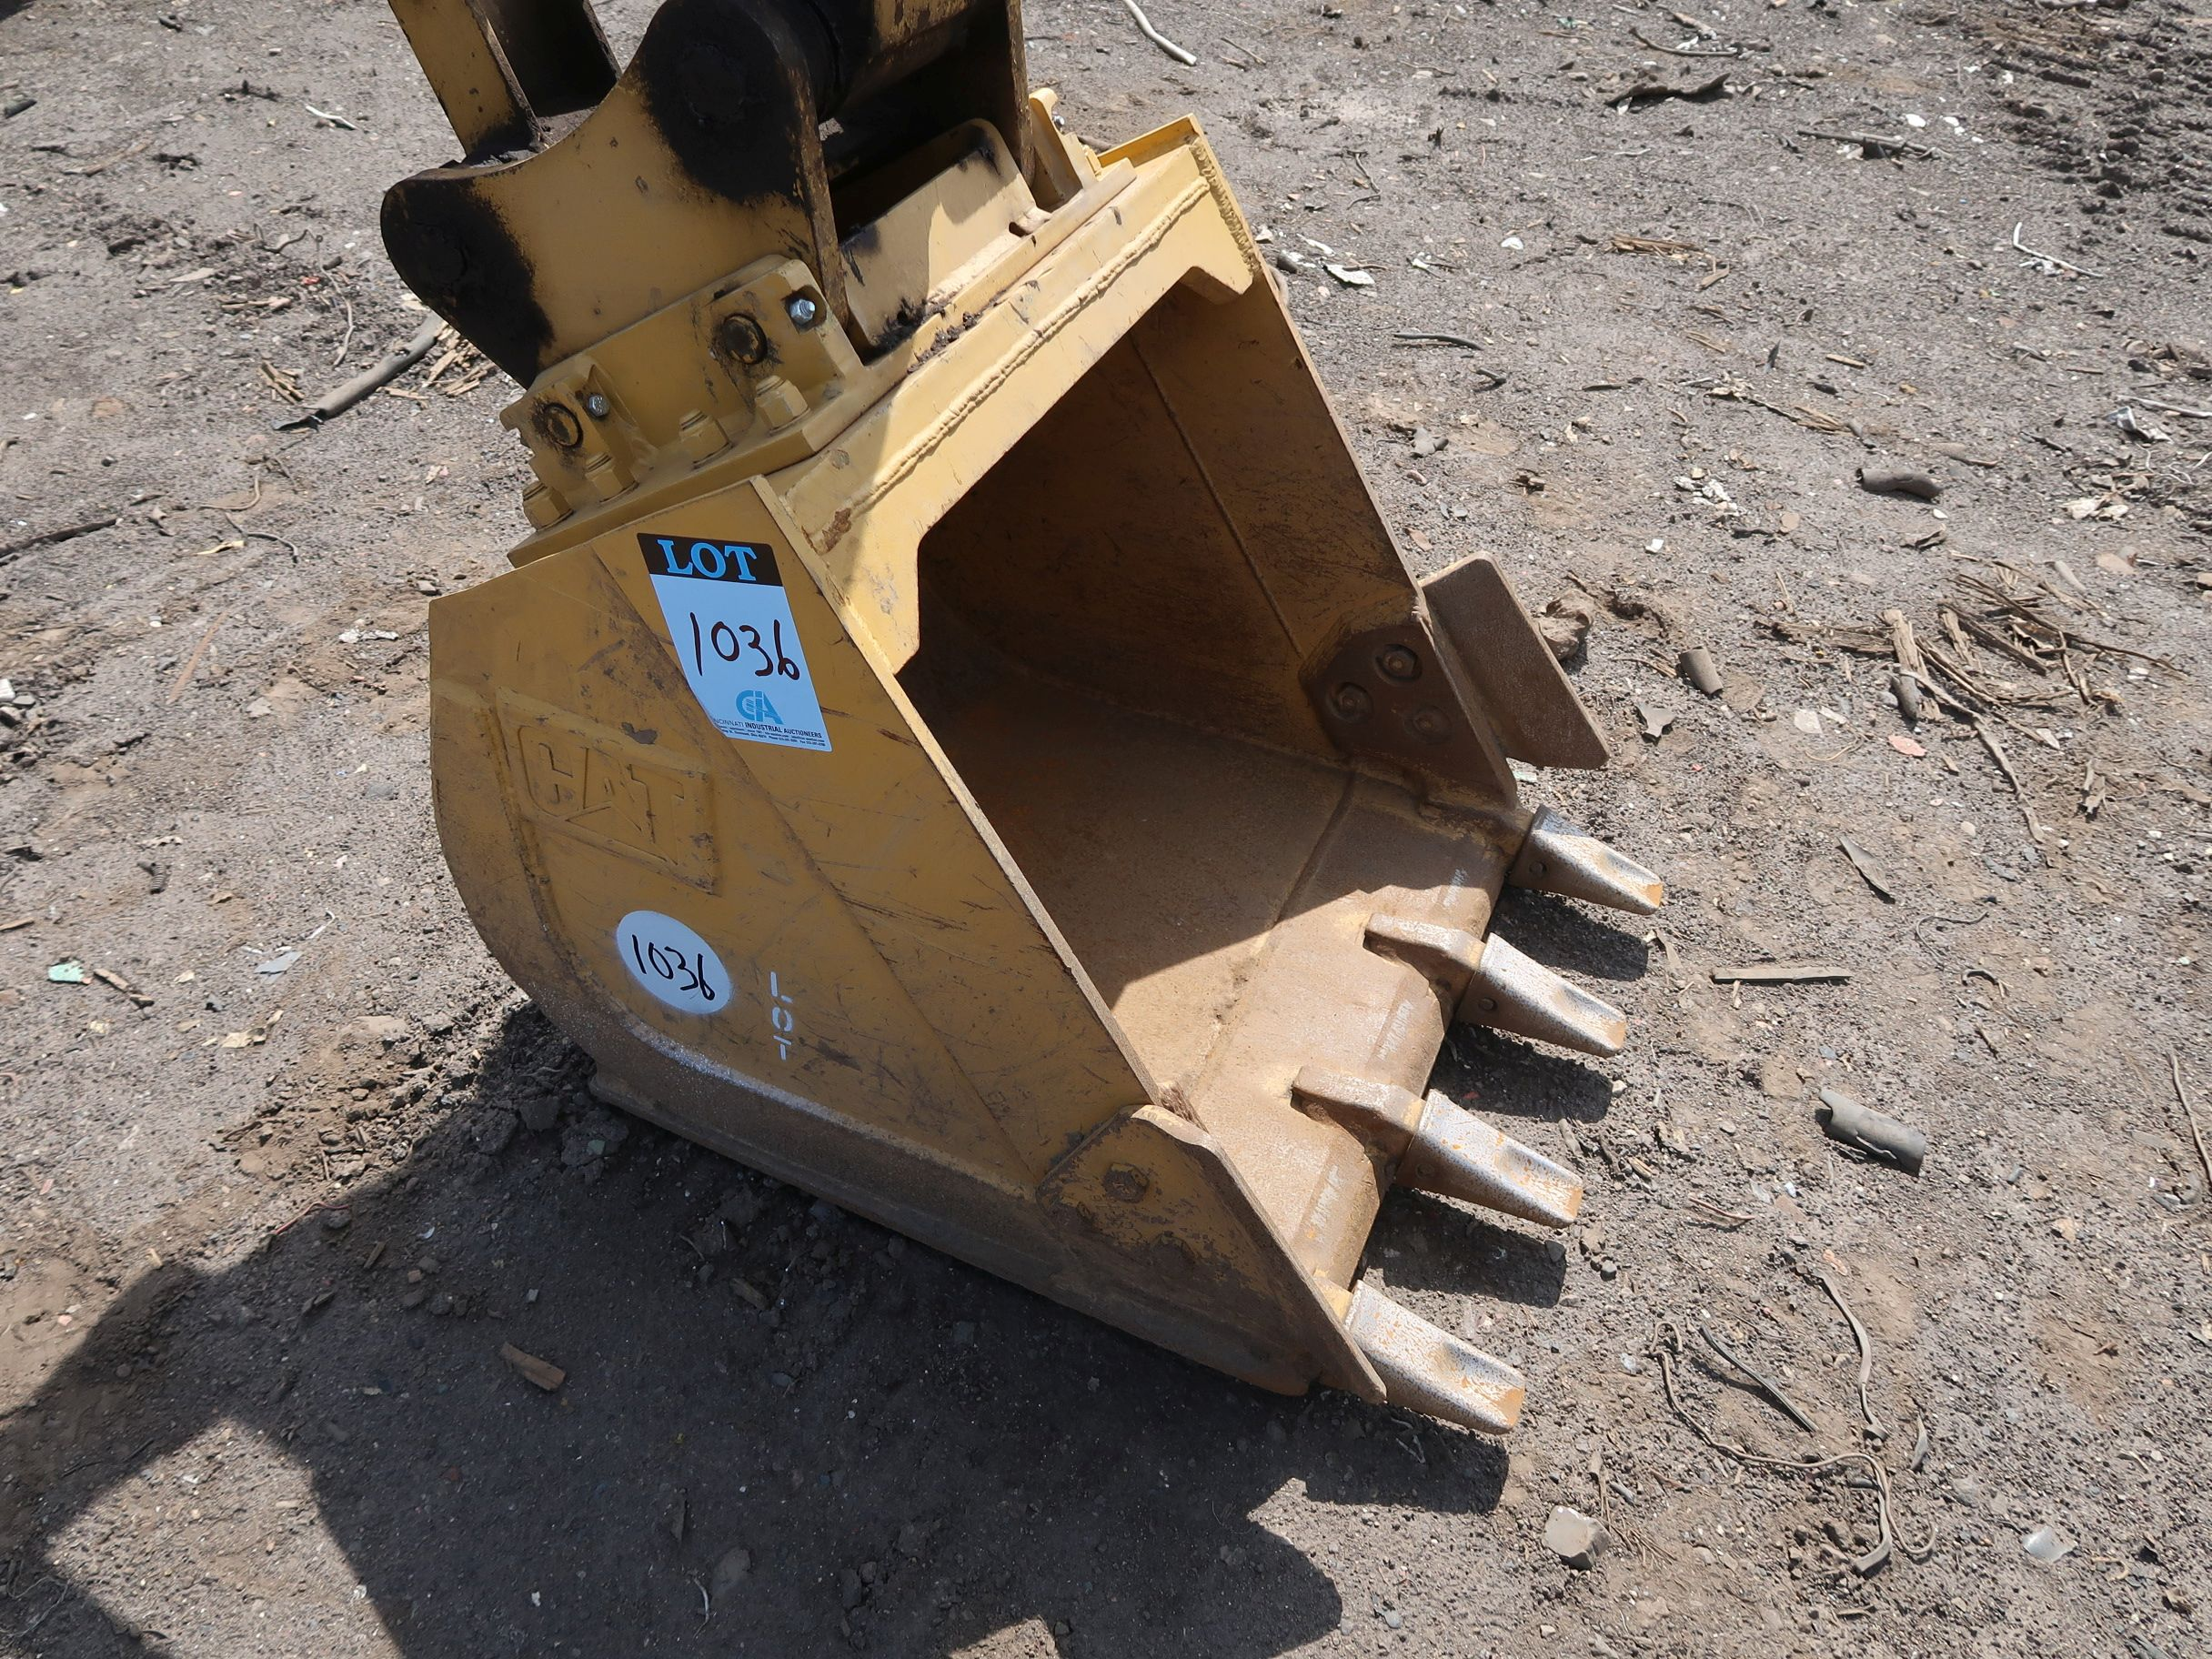 """Lot 1036 - 30"""" WIDE BUCKET WITH ALLIED GATOR COUPLER"""